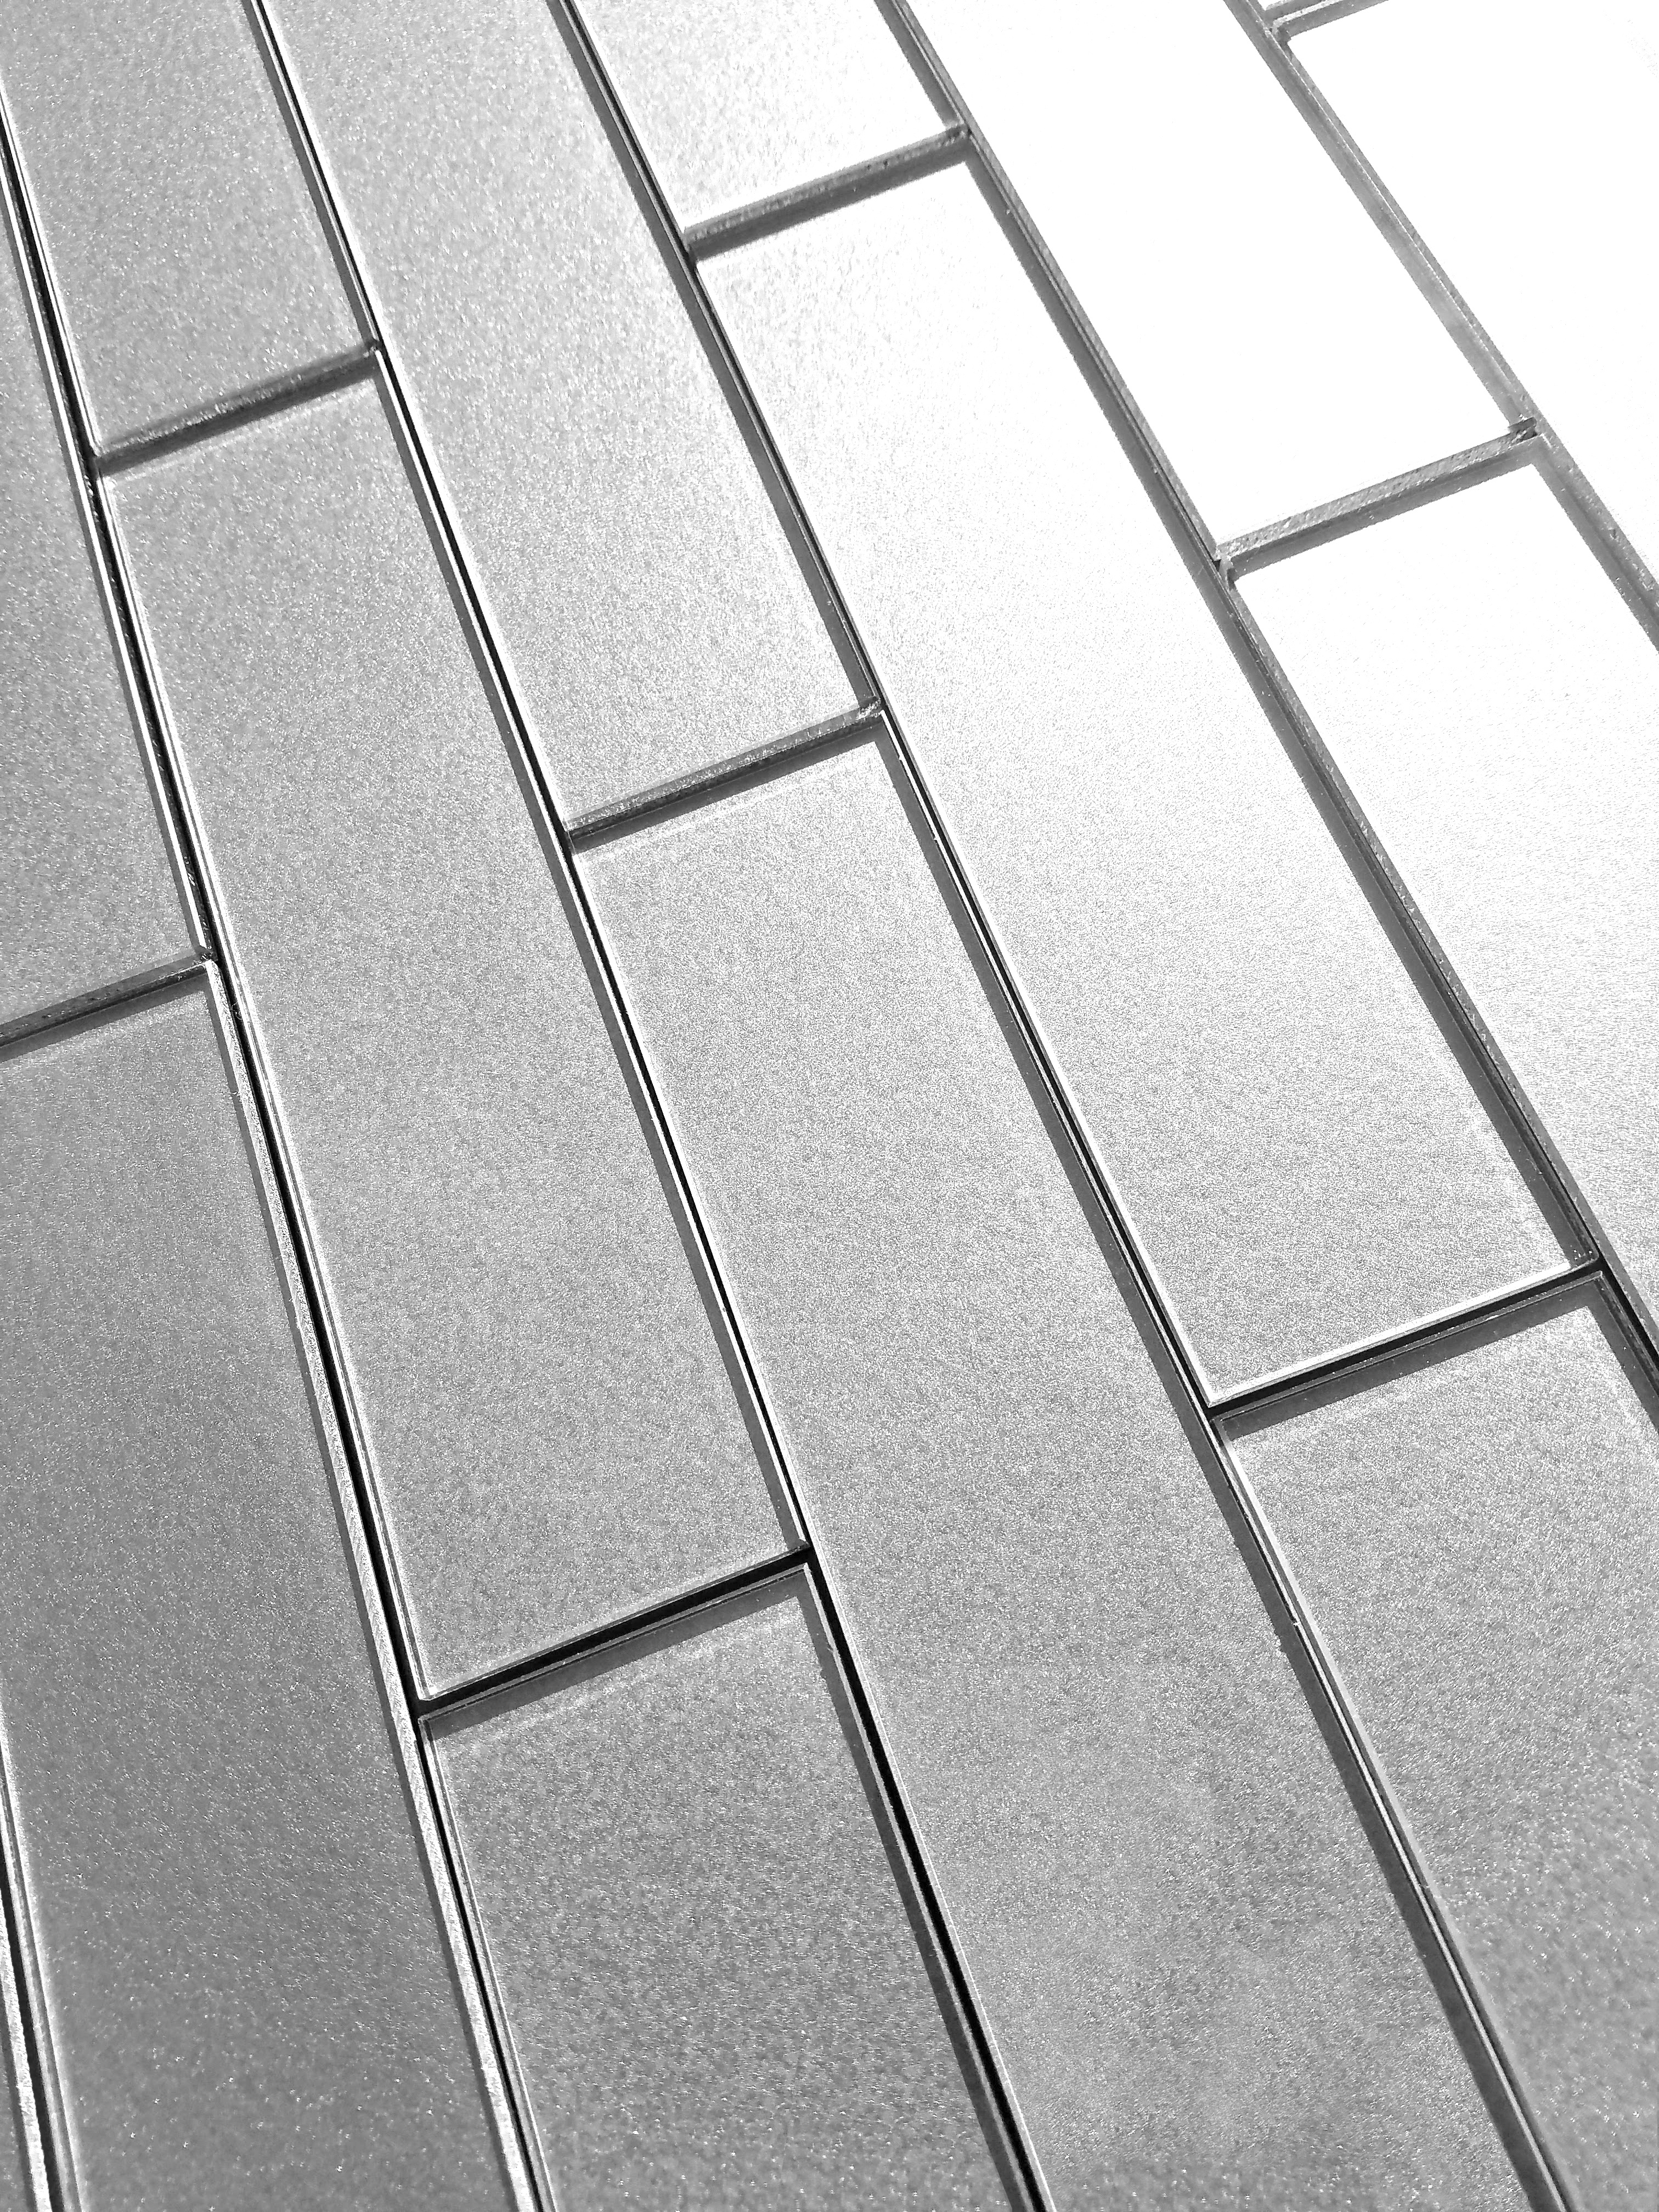 Forever 2 in x 8 in Glass Loose Tile in ETERNAL SILVER Glossy Straight